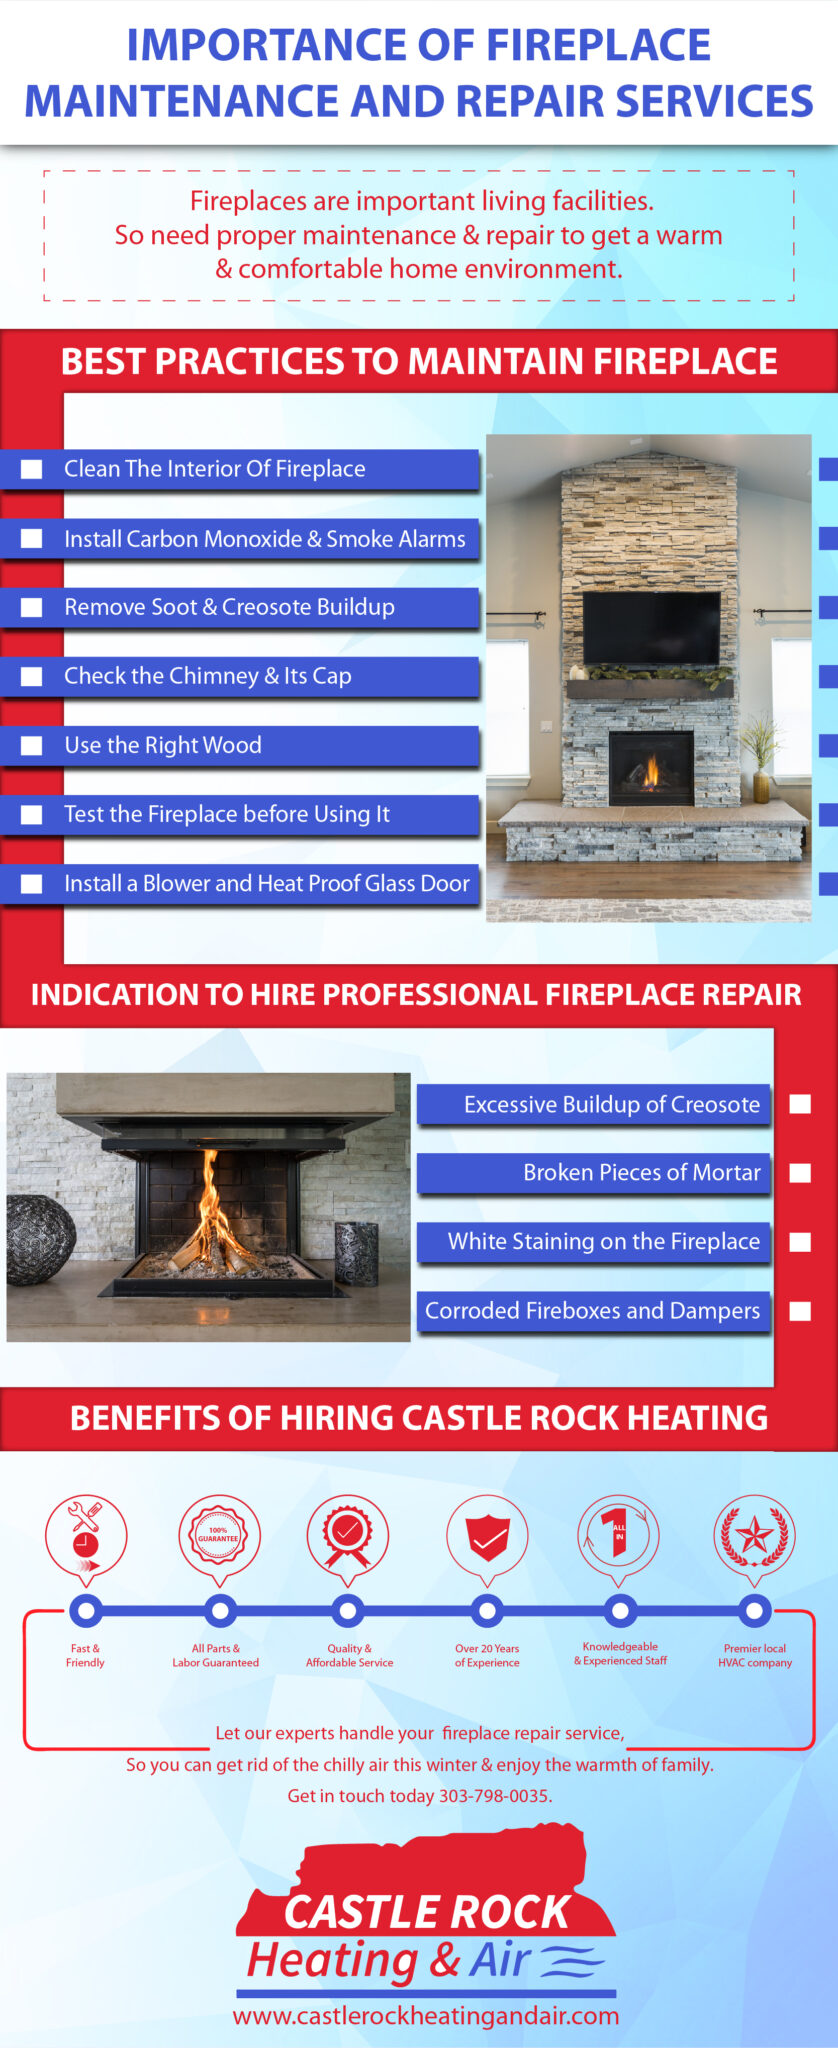 Importance Of Fireplace Maintenance And Repair Services